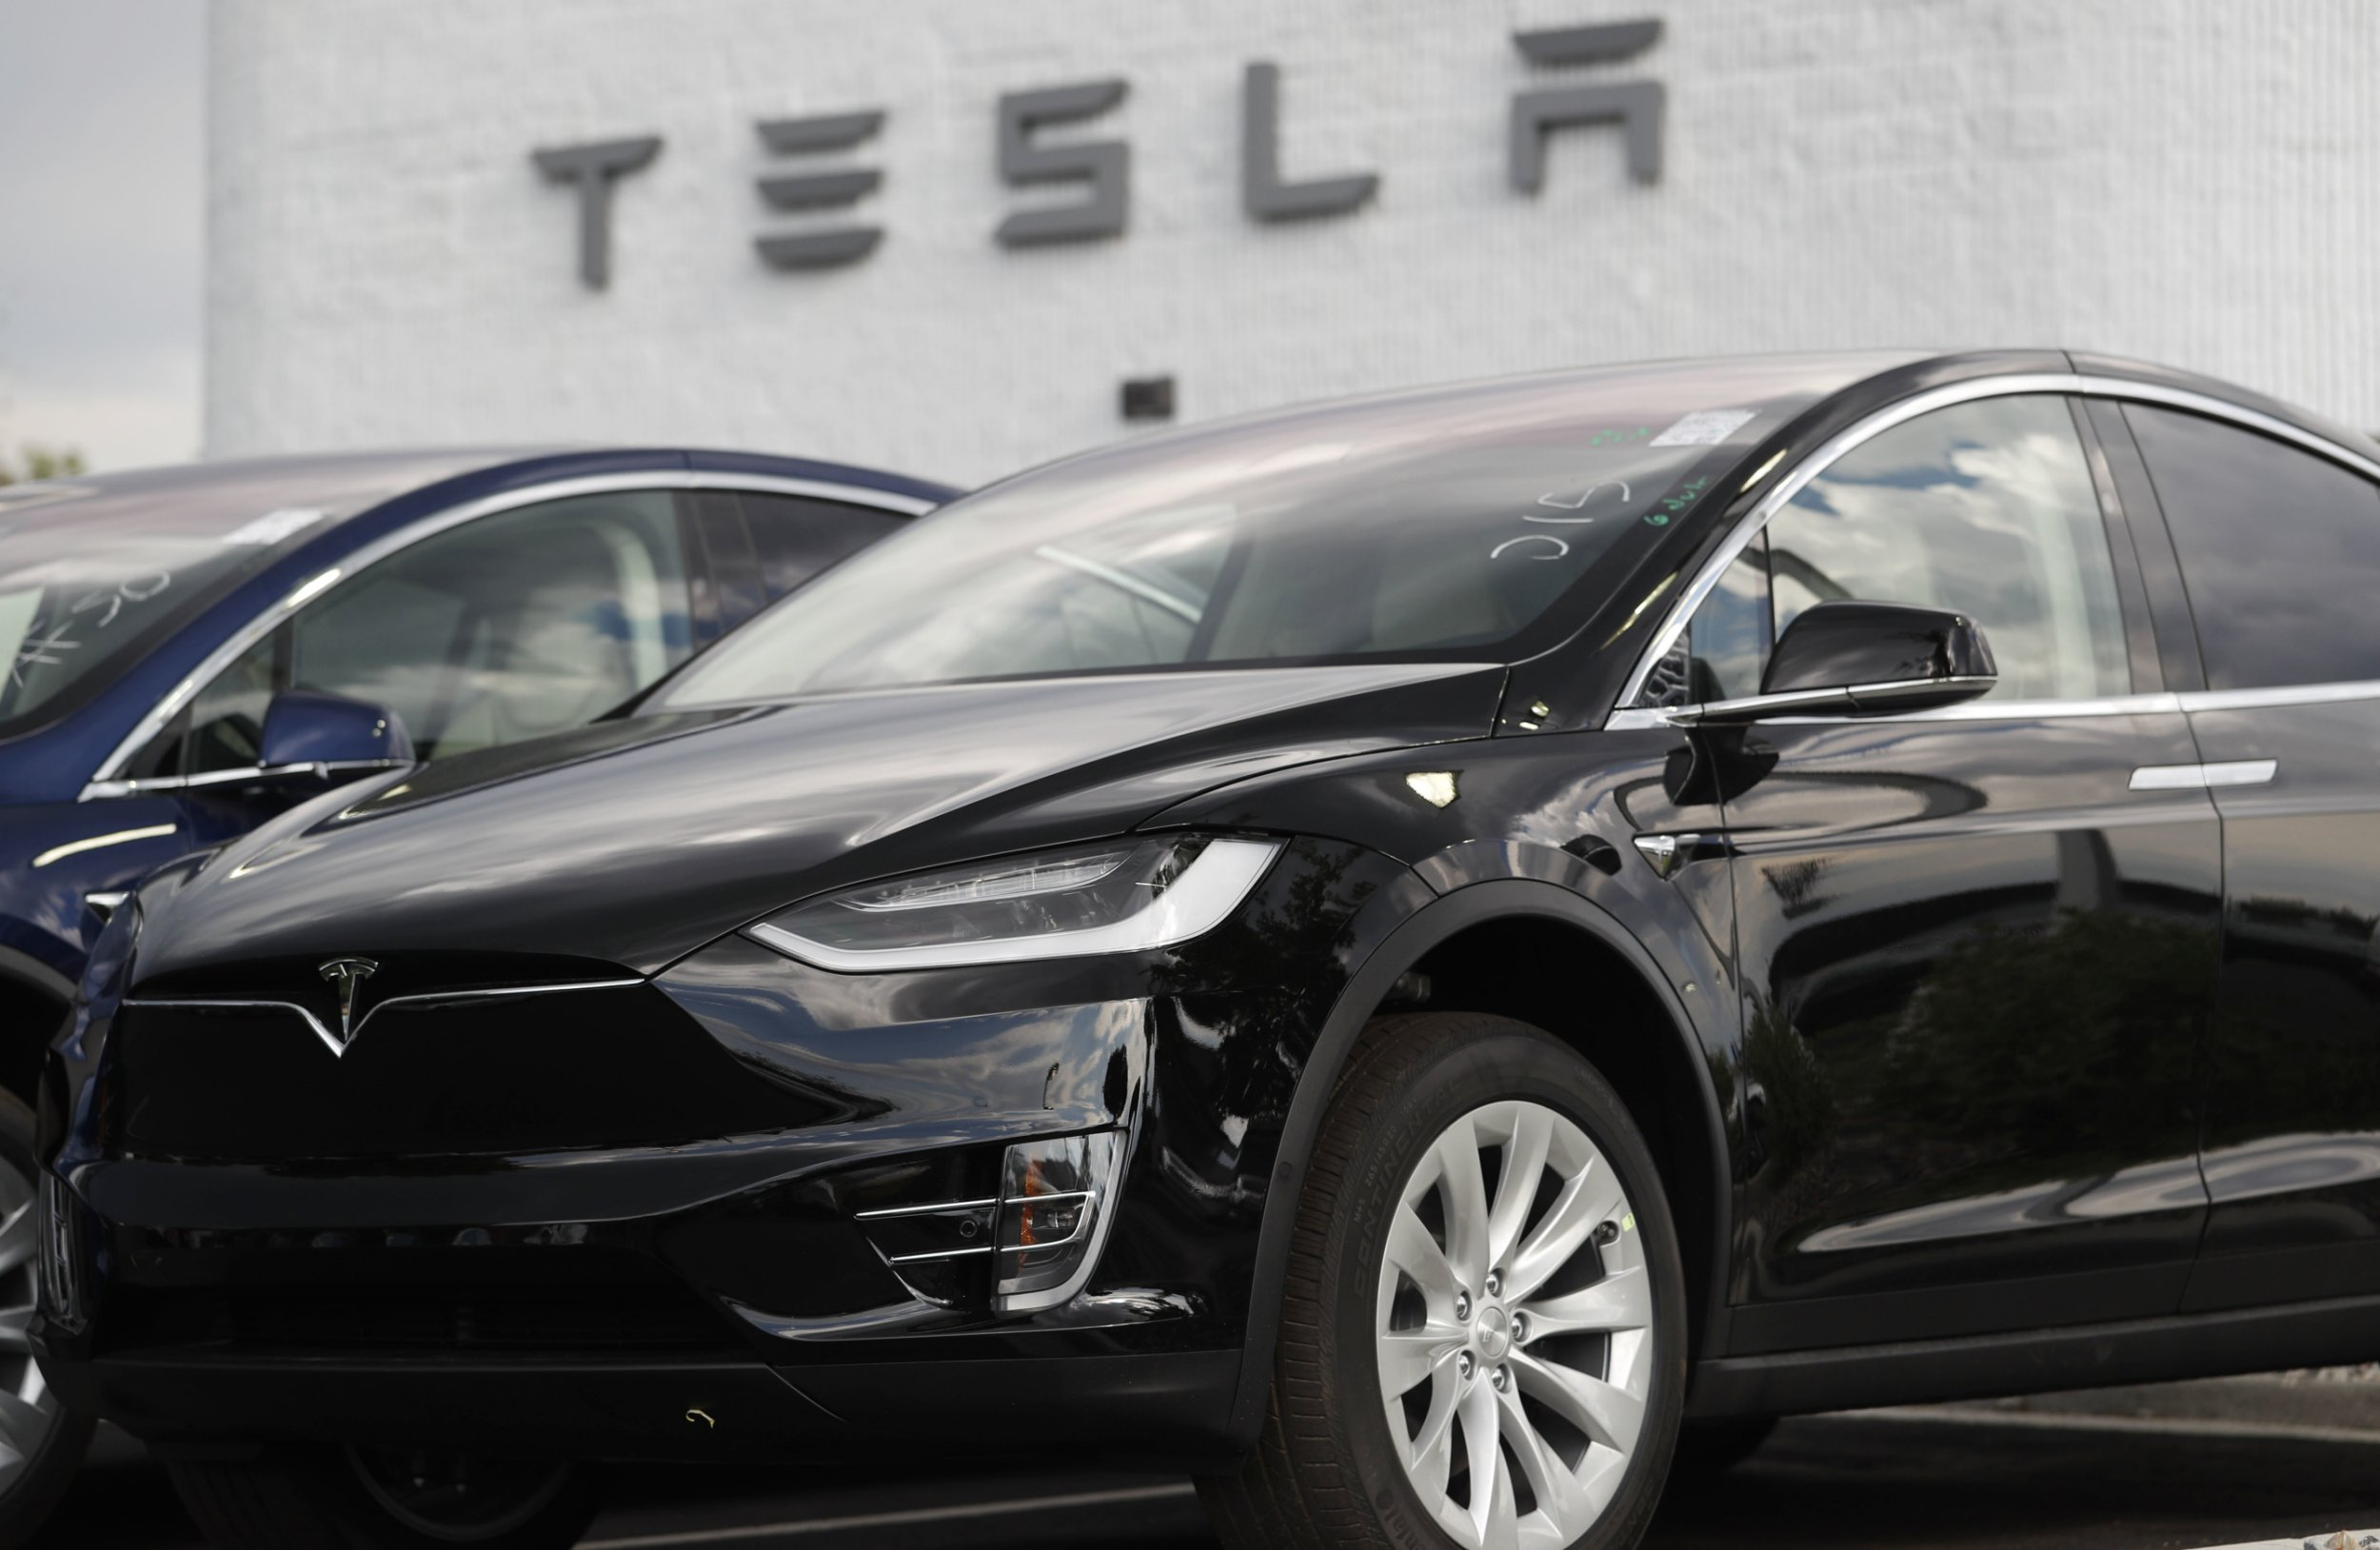 FILE - In this July 8, 2018 file photo, a 2018 Model X sits on display outside a Tesla showroom in Littleton, Colo. Elon Musk???s murky future as Tesla Motors??? CEO amid a securities fraud lawsuit isn???t the only cloud hanging over the electric car maker. The company was on shaky financial ground even before government regulators set out to remove Musk, a blow that has increased the pressure on Tesla to prove it can consistently manufacture enough cars to survive. (AP Photo/David Zalubowski, File)